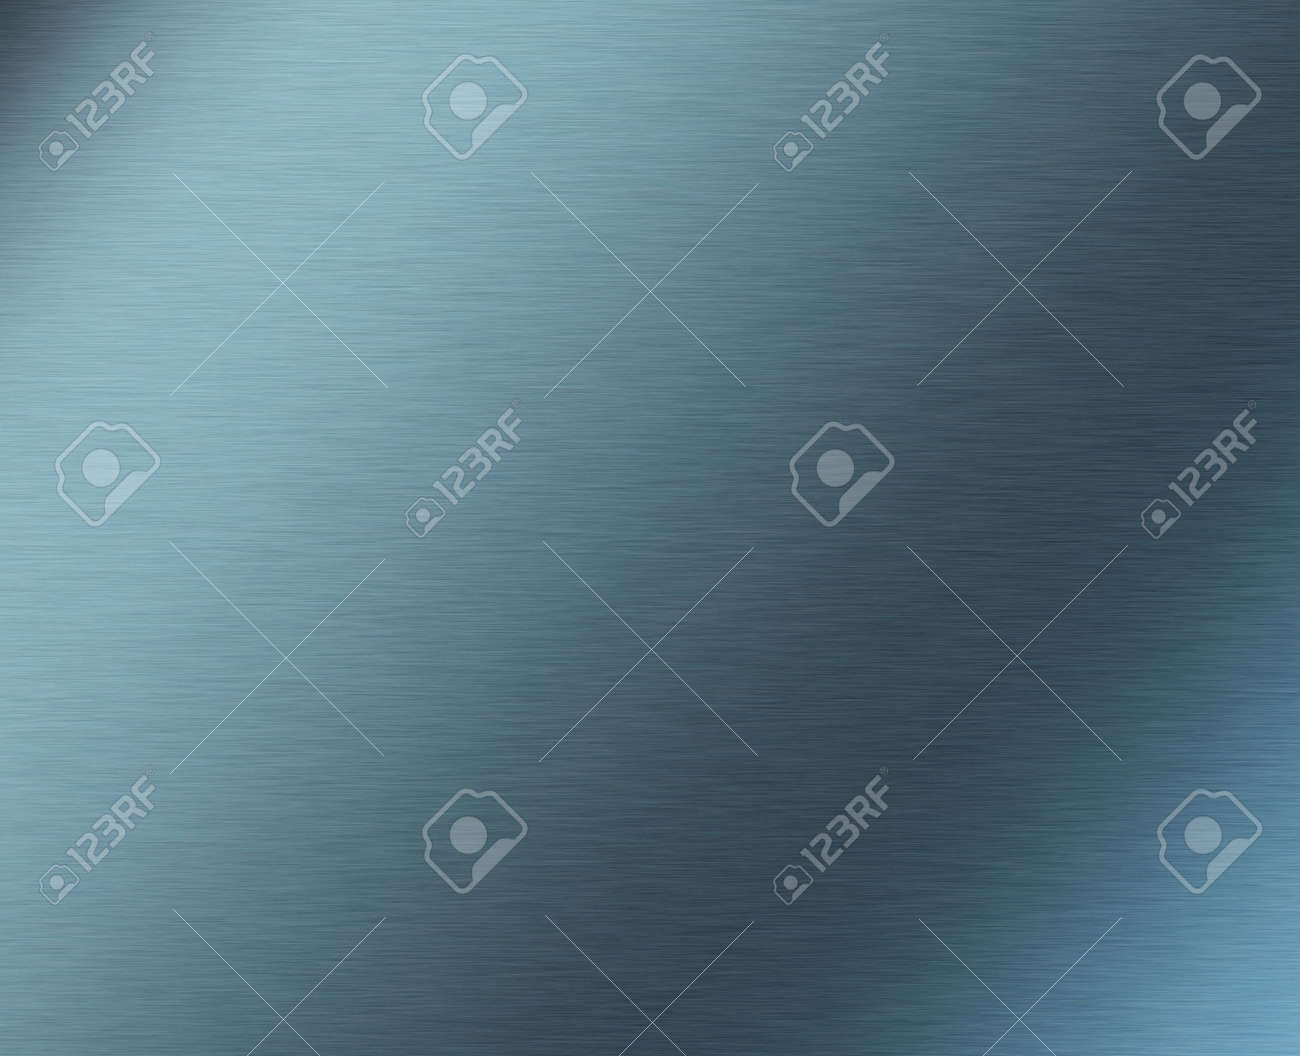 background image of a brushed metal steel texture Stock Photo - 2878687